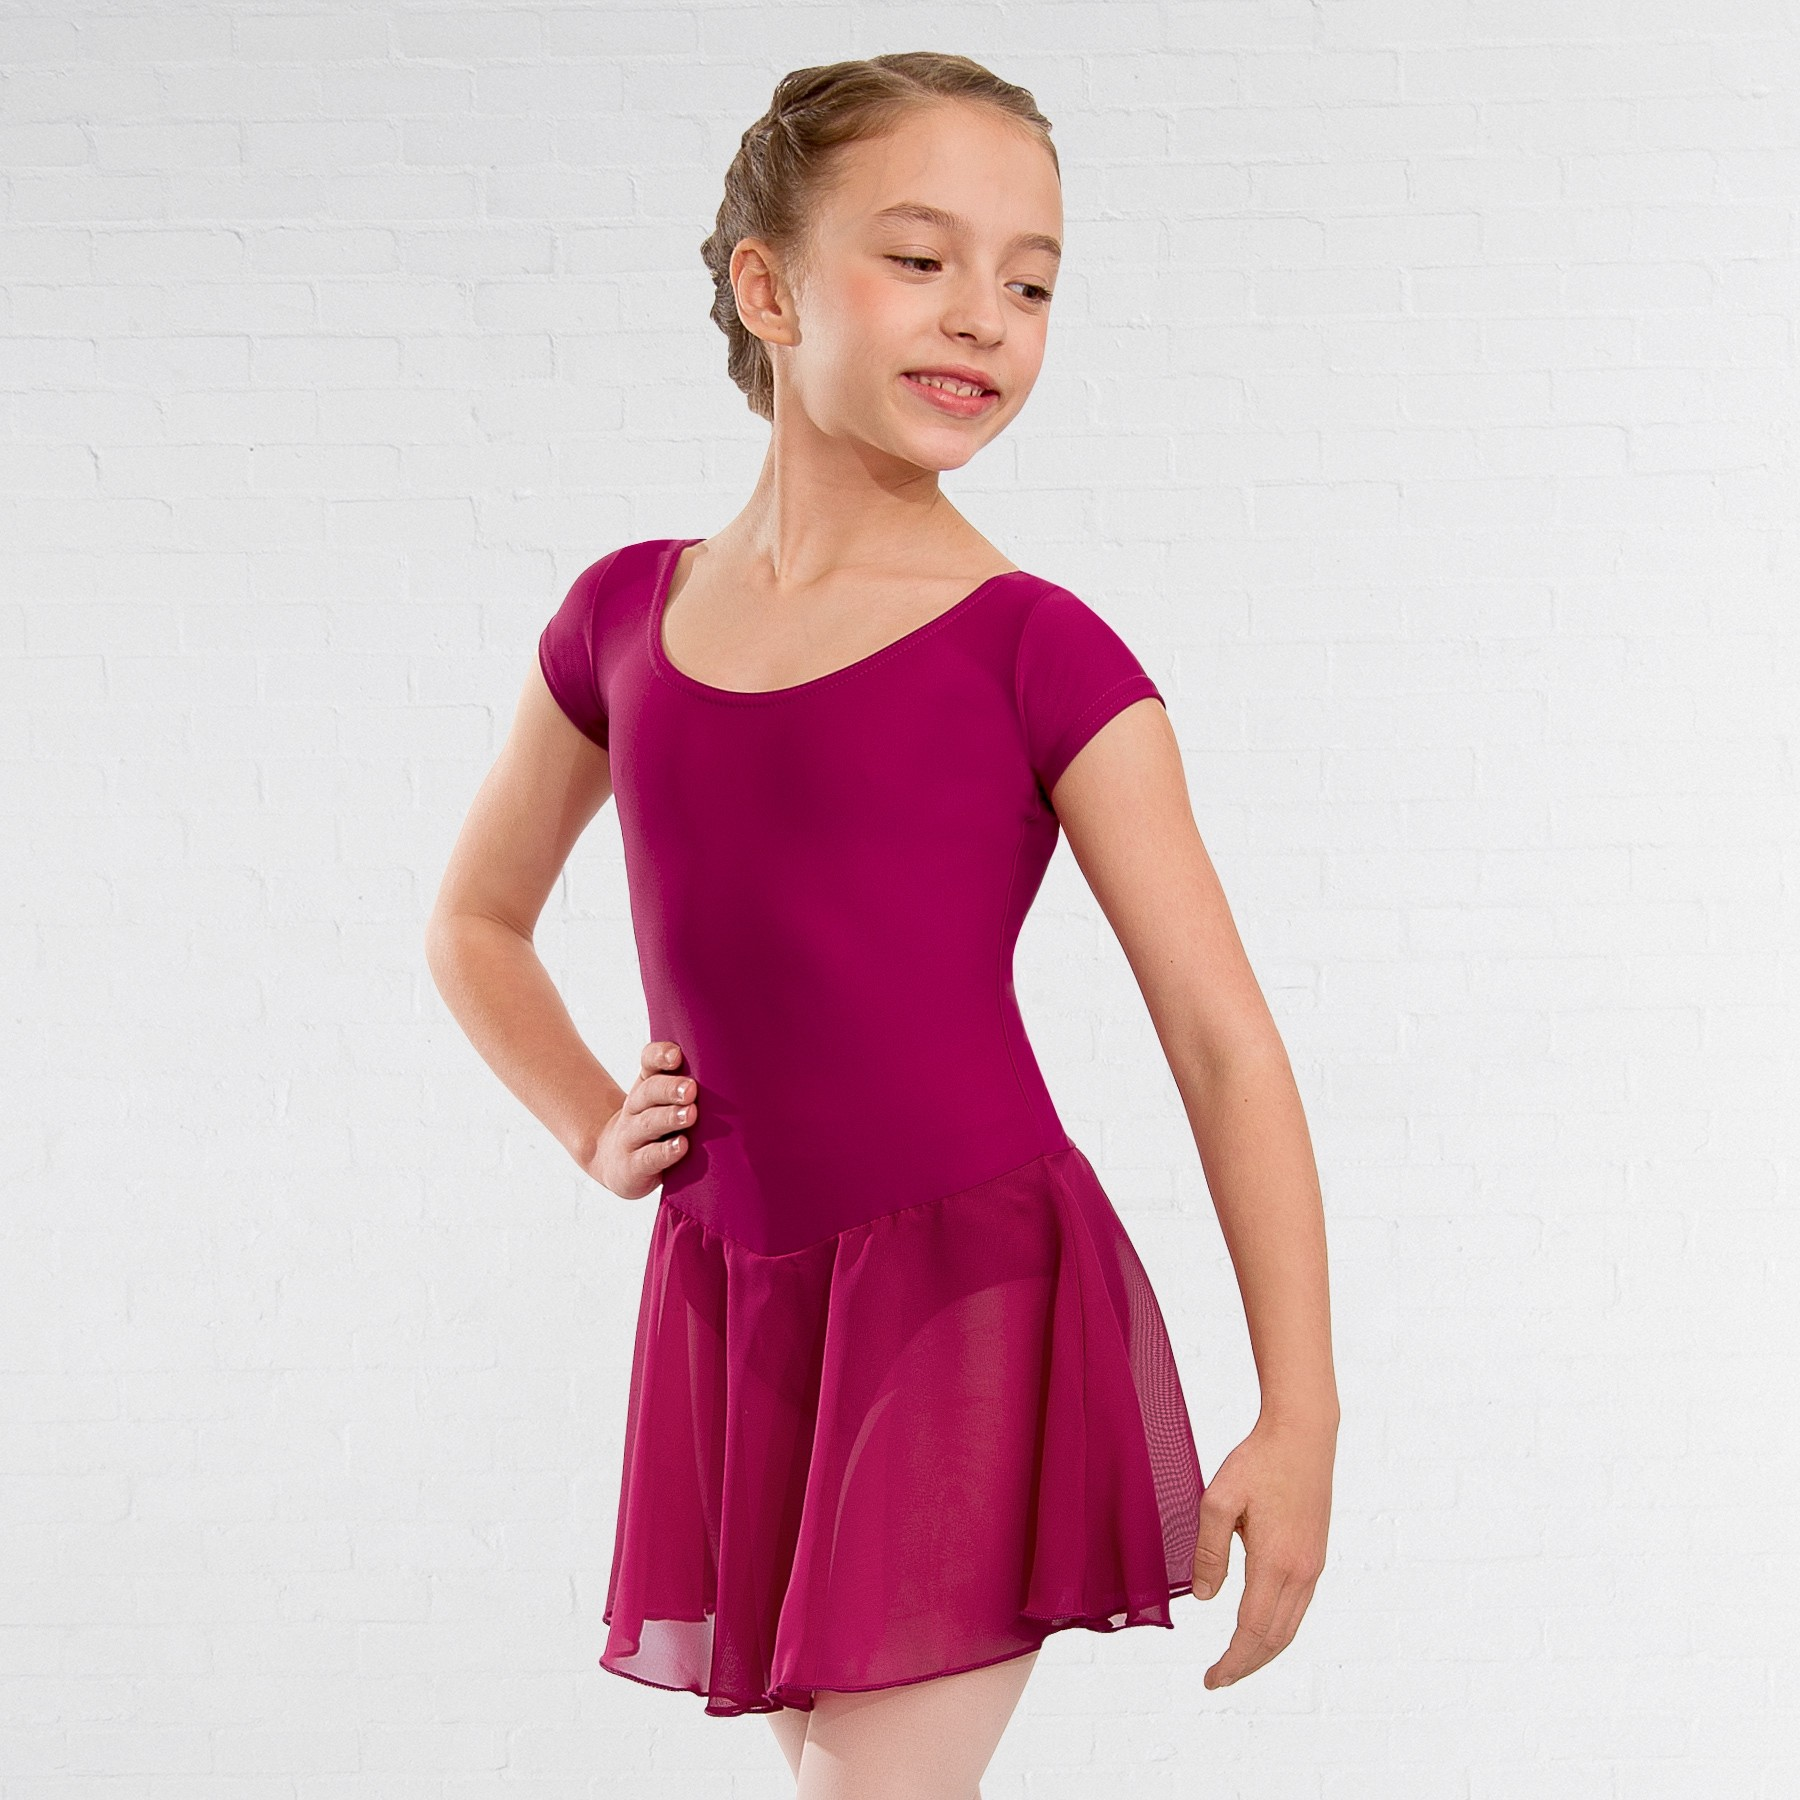 1st Position Milly Voile Skirted Cap Sleeve Leotard (Rose)